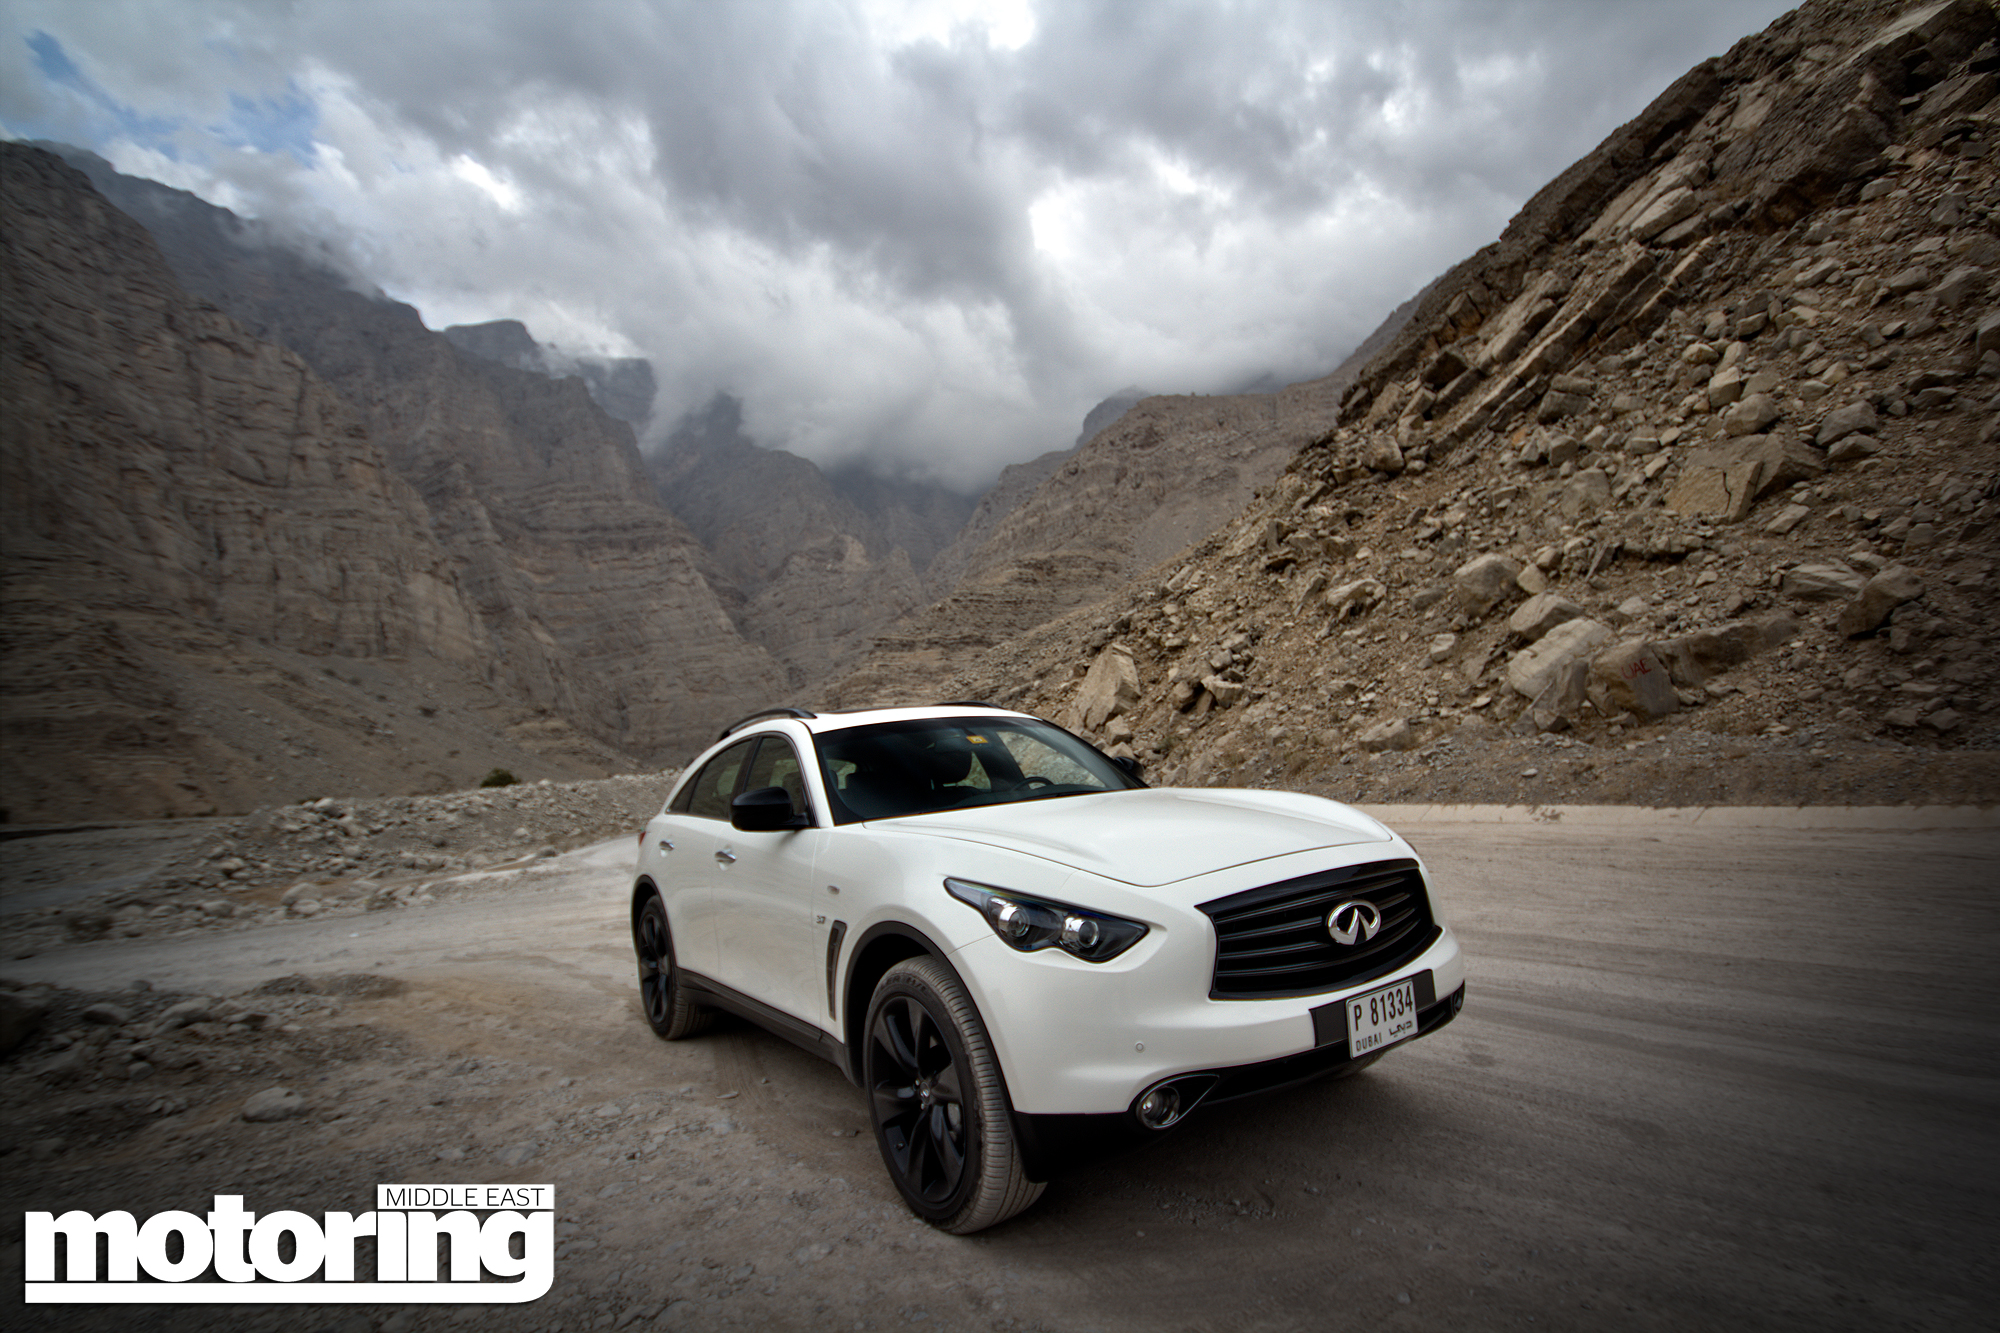 2015 infiniti qx70 s reviewmotoring middle east car news reviews and buying guides. Black Bedroom Furniture Sets. Home Design Ideas